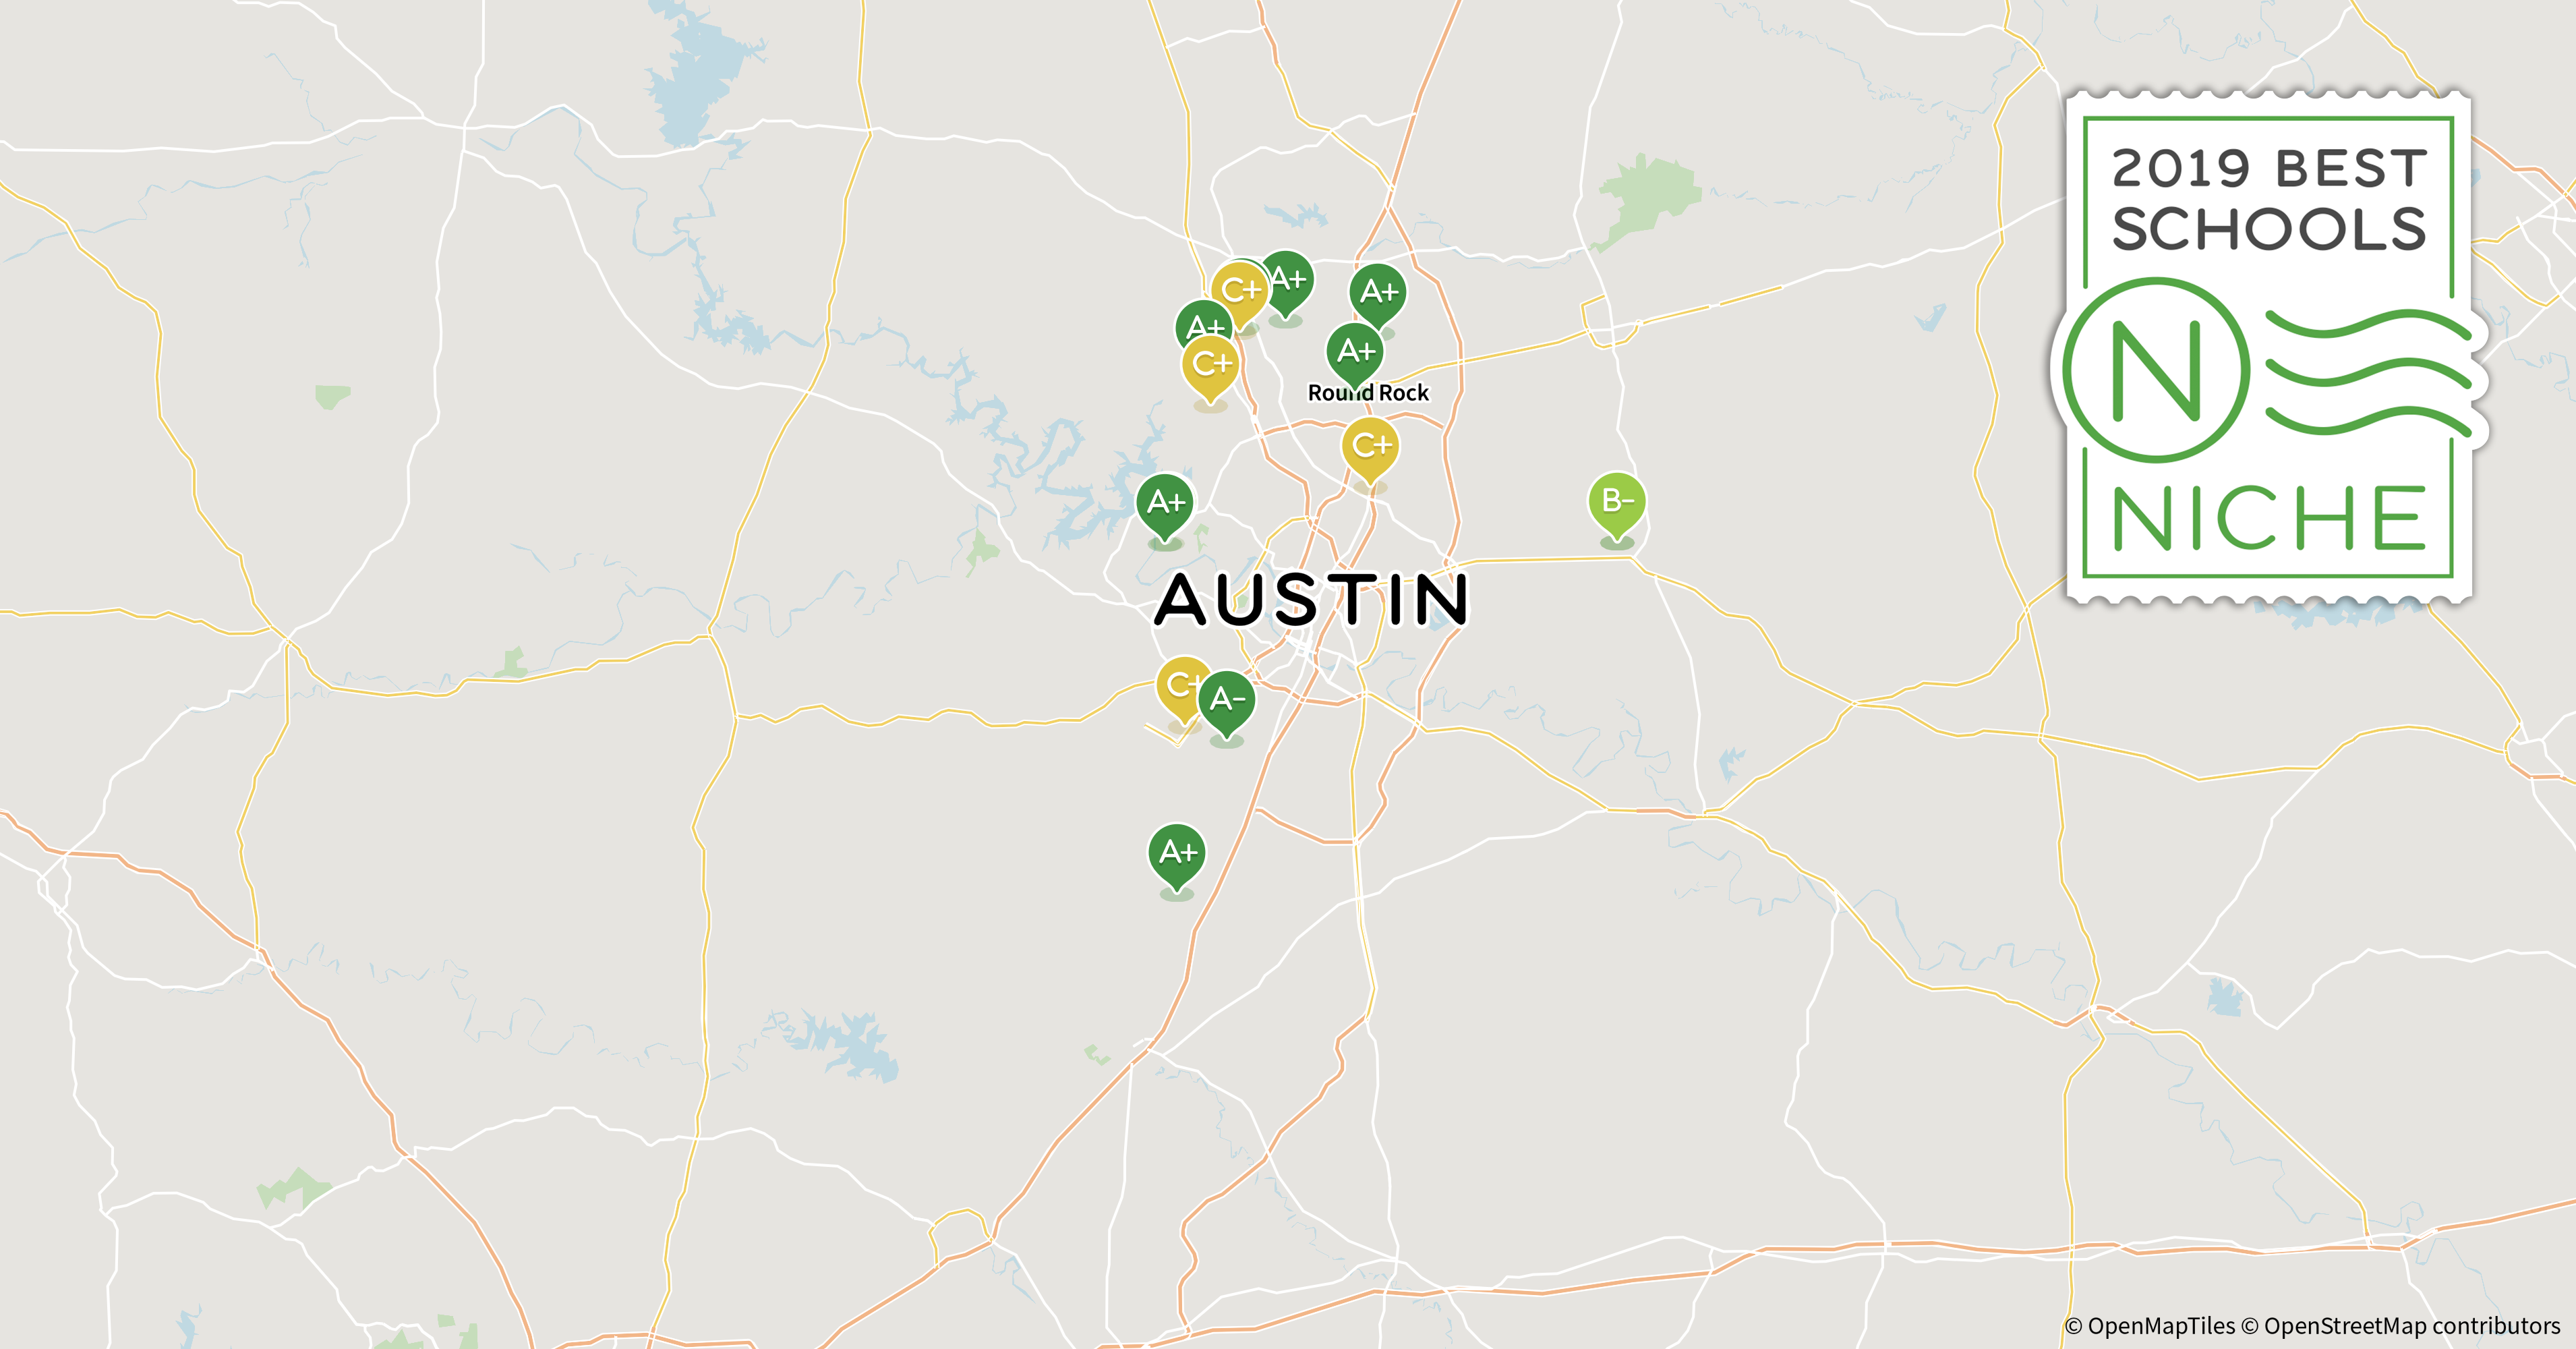 2019 Best School Districts in the Austin Area - Niche